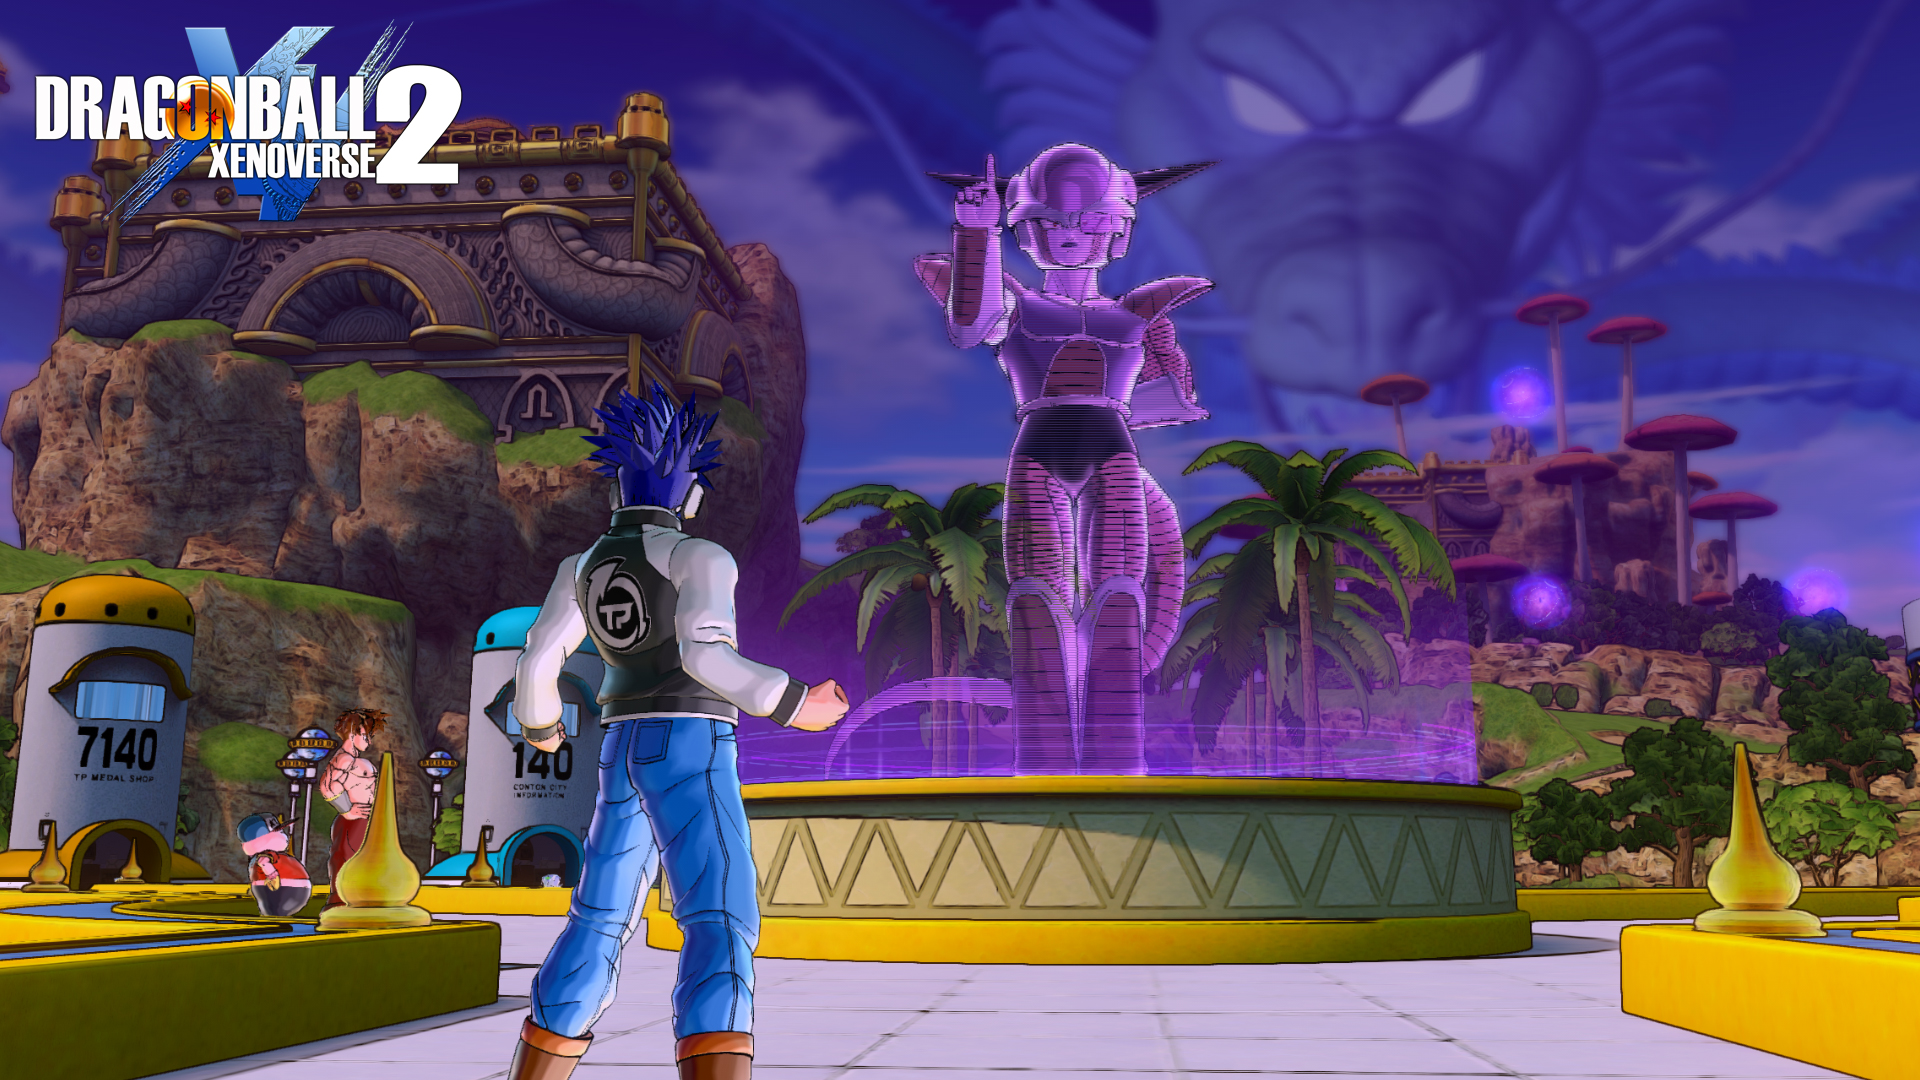 dlc pack 8 xenoverse 2 download